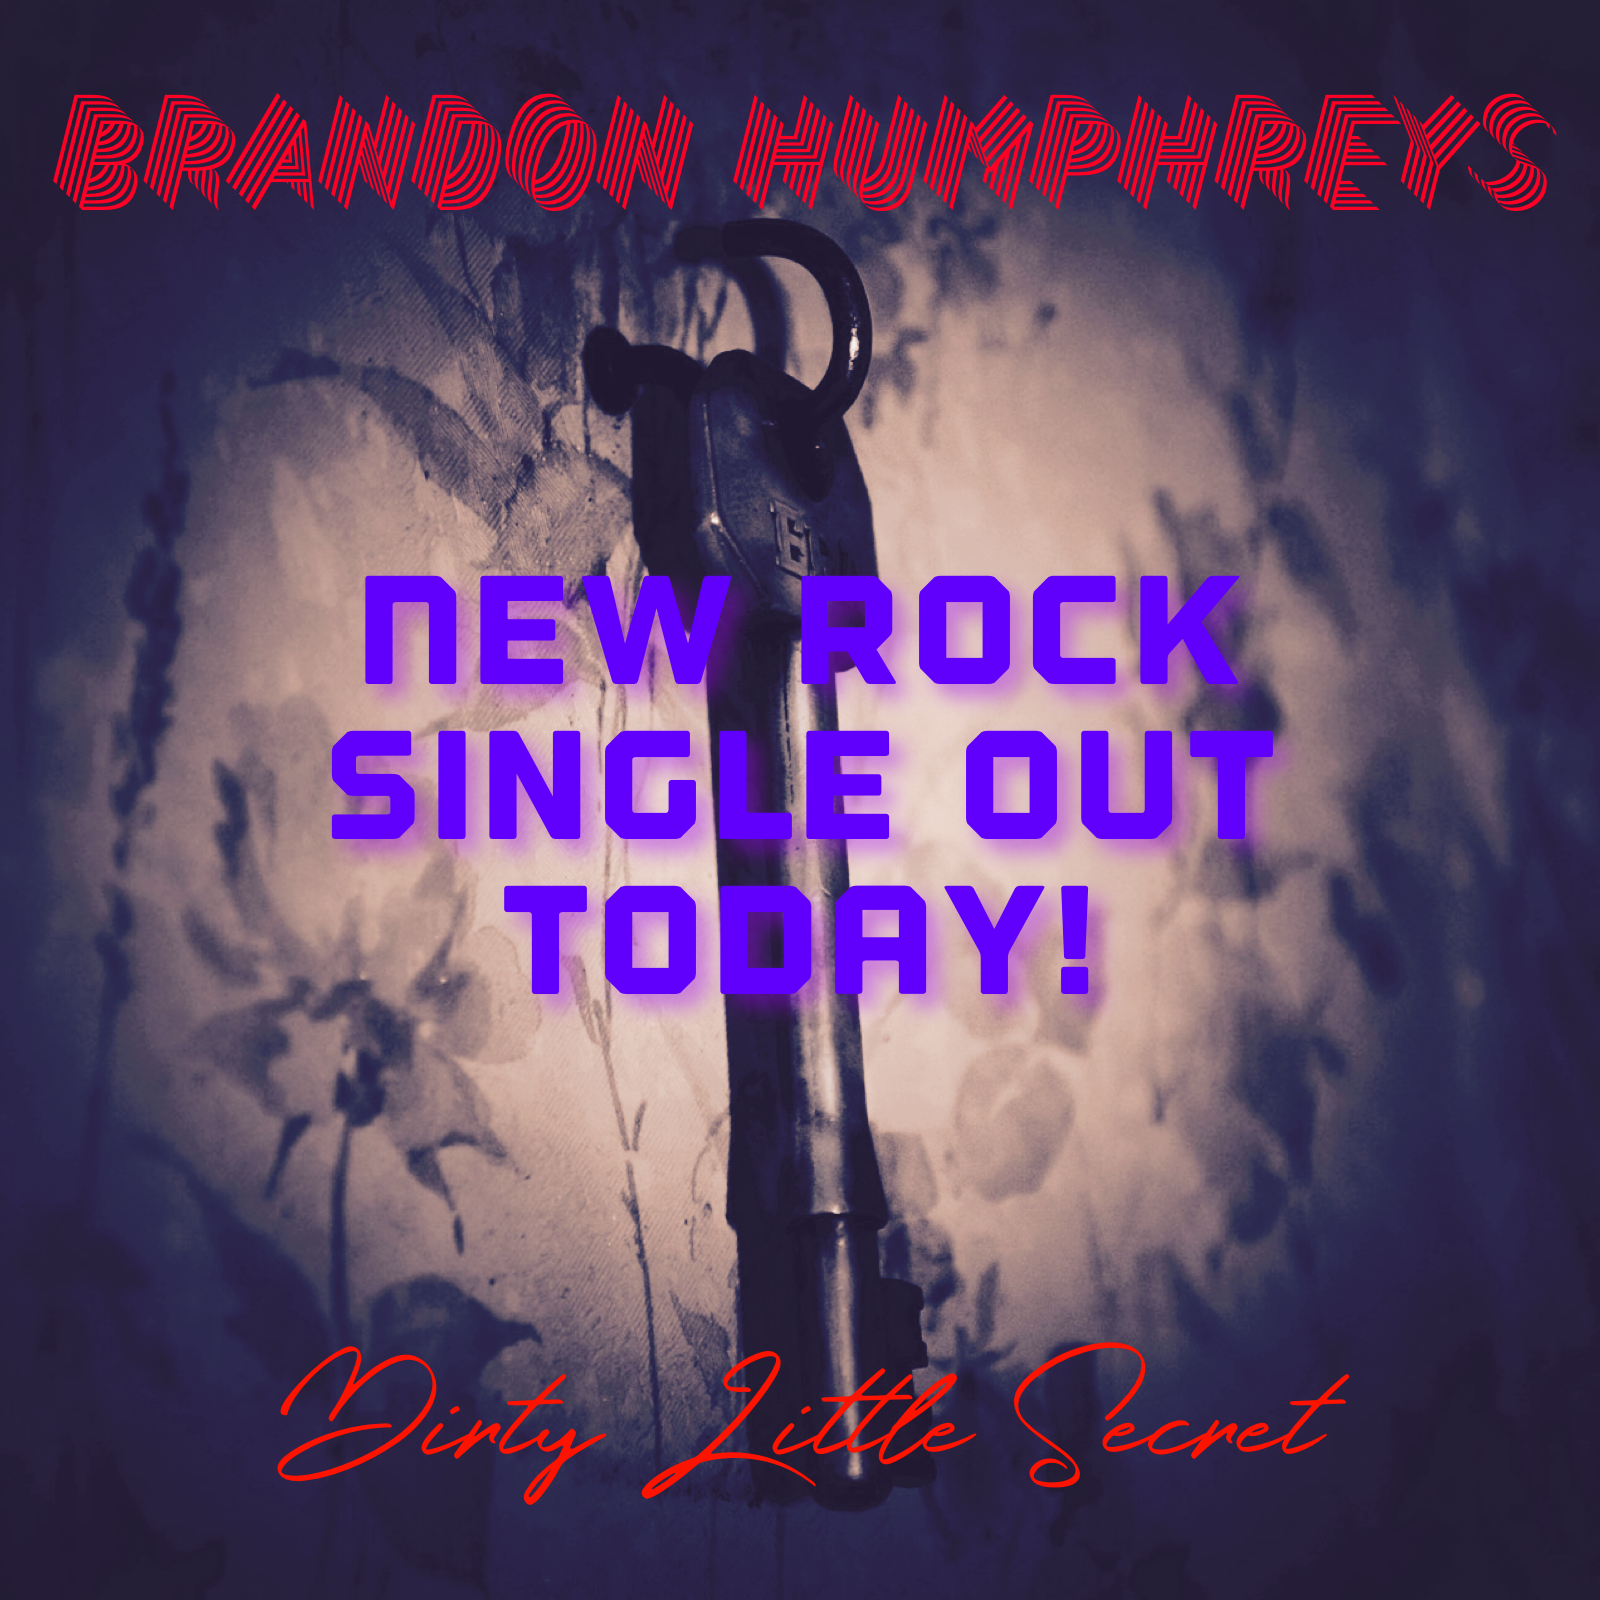 Promotional photo for the Dirty Little Secret single.  It features an old key hanging from a floral-patterned wall.  There is a dark purple hue to the whole picture and and the words Brandon Humphreys New Rock Single Out Today Dirty Little Secret are imposed over the picture of the key in red and blue font colors.